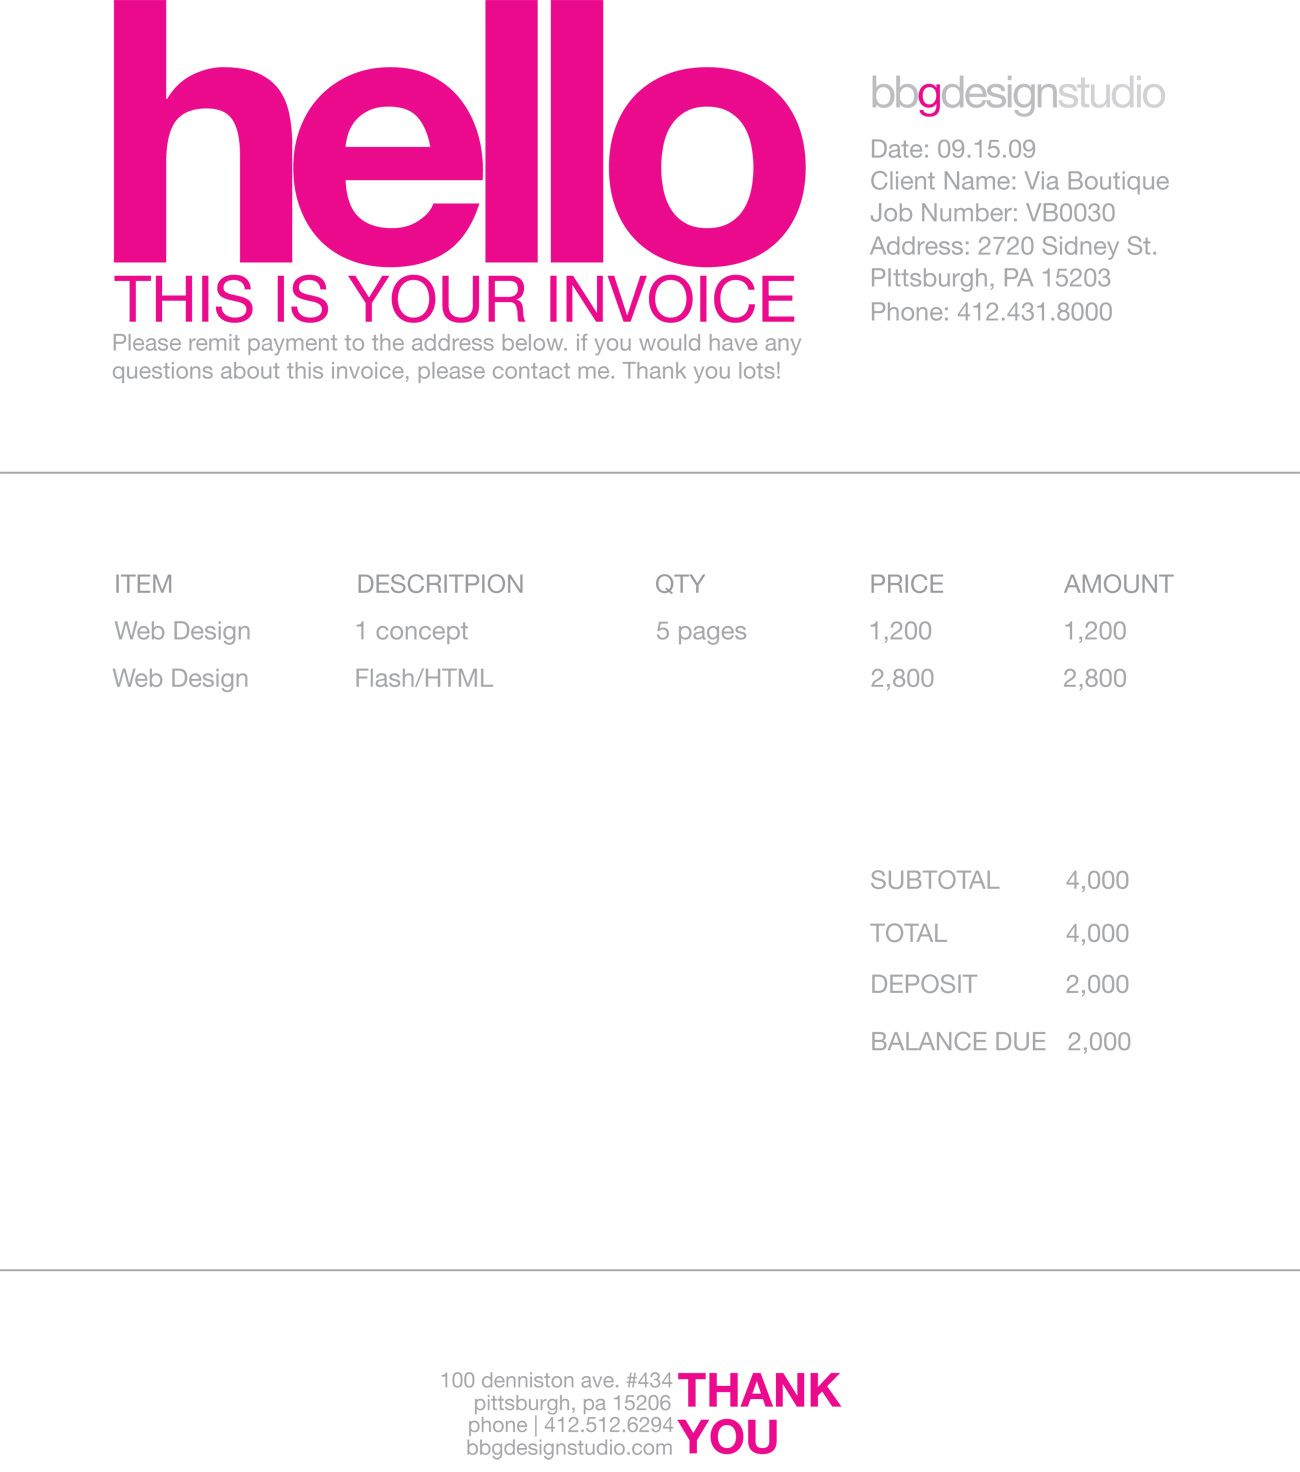 Theologygeekblogus  Inspiring  Images About Invoice Design On Pinterest With Heavenly Quicken Invoicing Besides Excel Invoice Templates Free Furthermore Microsoft Office Templates Invoice With Easy On The Eye Personal Invoice Template Word Also Invoice In Accounting In Addition Work Invoice Template Free And Car Invoice Price Finder As Well As Free Invoice Printable Additionally Invoice Discount Terms From Pinterestcom With Theologygeekblogus  Heavenly  Images About Invoice Design On Pinterest With Easy On The Eye Quicken Invoicing Besides Excel Invoice Templates Free Furthermore Microsoft Office Templates Invoice And Inspiring Personal Invoice Template Word Also Invoice In Accounting In Addition Work Invoice Template Free From Pinterestcom